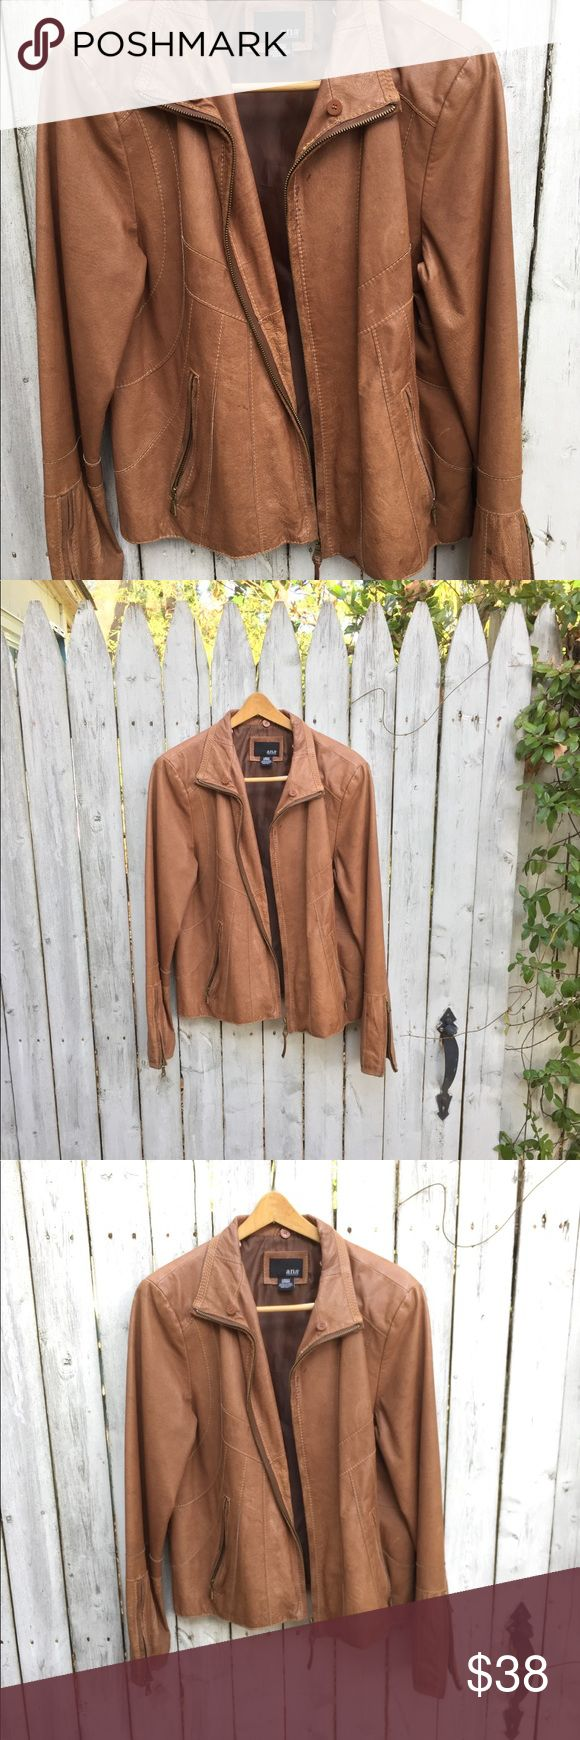 Ana British tan leather jacket women's large Anna British tan leather jacket women's coat size large great condition a few spots see photos  Real genuine leather leather completely blind. Size runs like a normal size Women's large. Soft Movable leather.from a smoke free home ana Jackets & Coats Utility Jackets